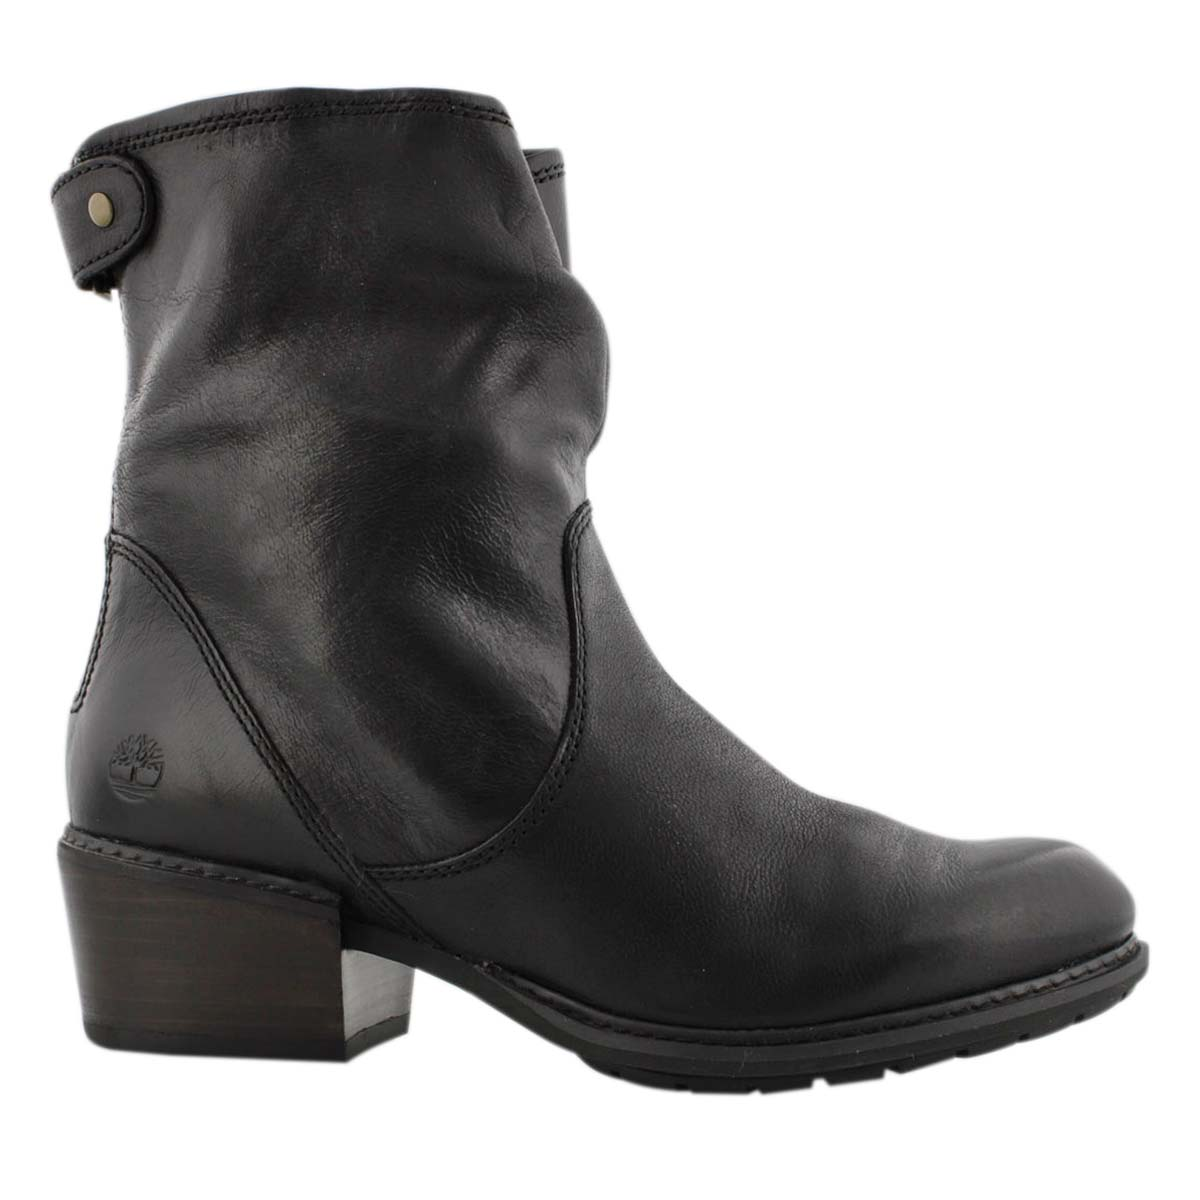 Lds Sutherlin Bay black mid ankle boot